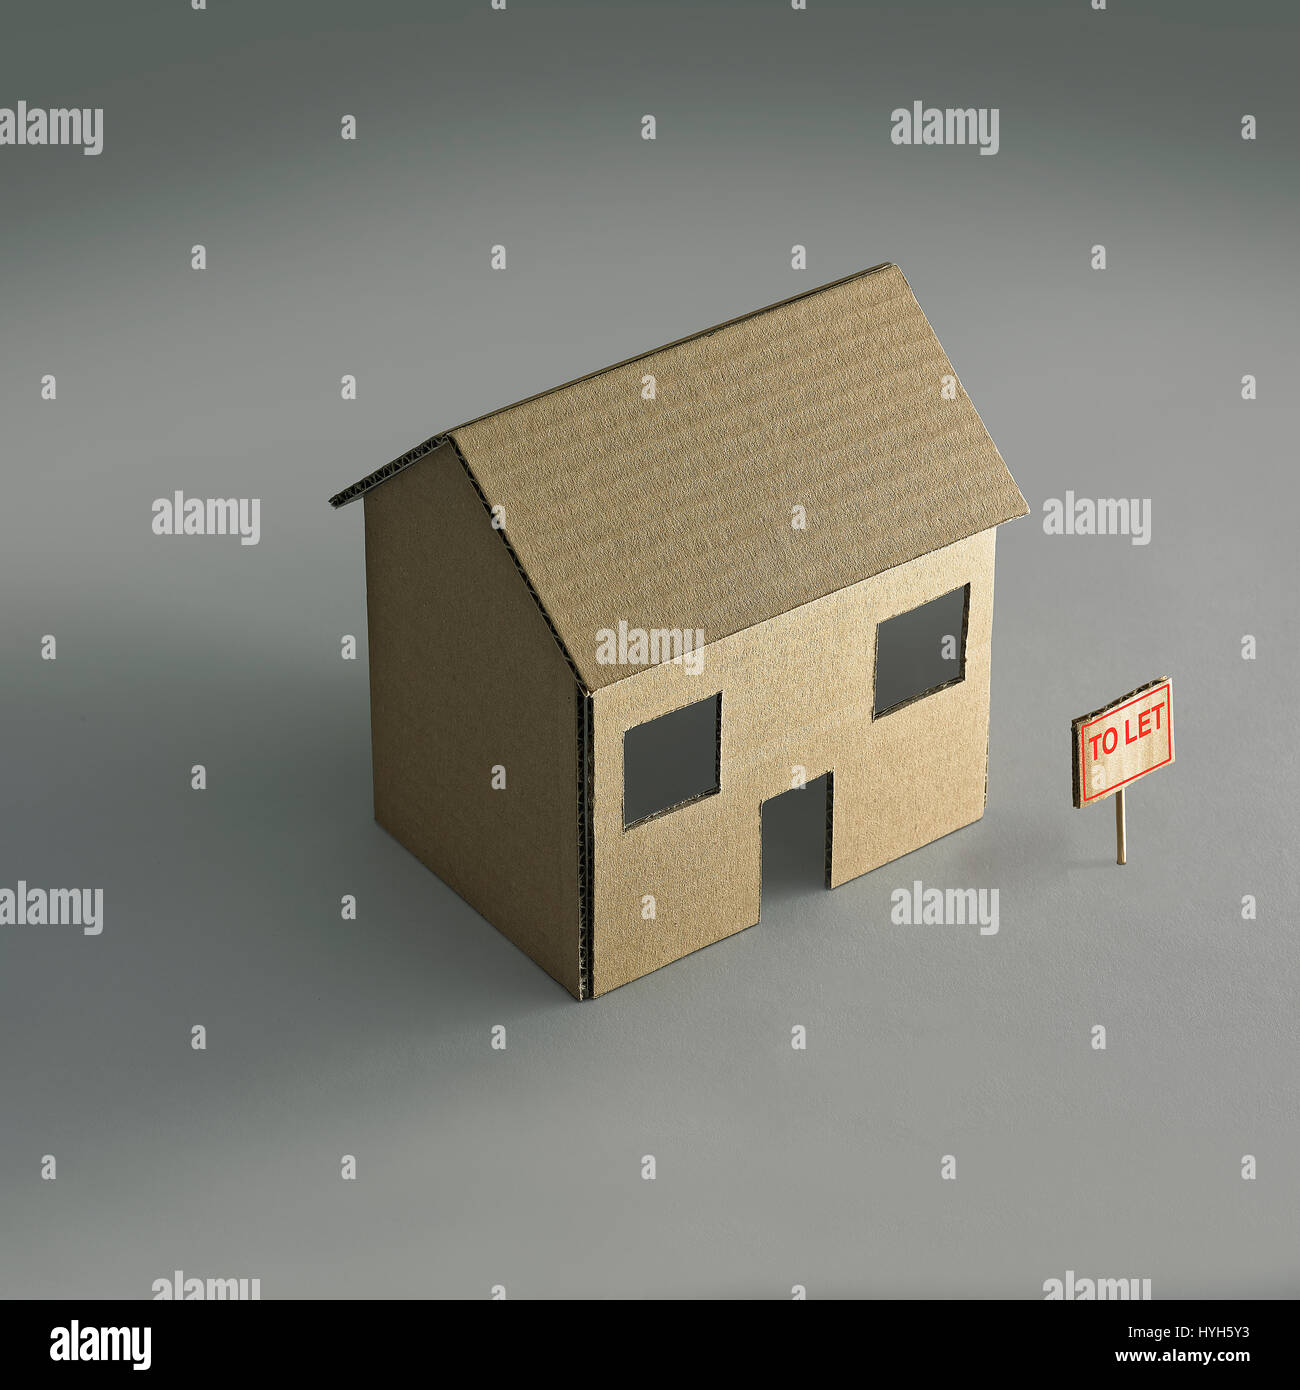 Cardboard House to let Stock Photo